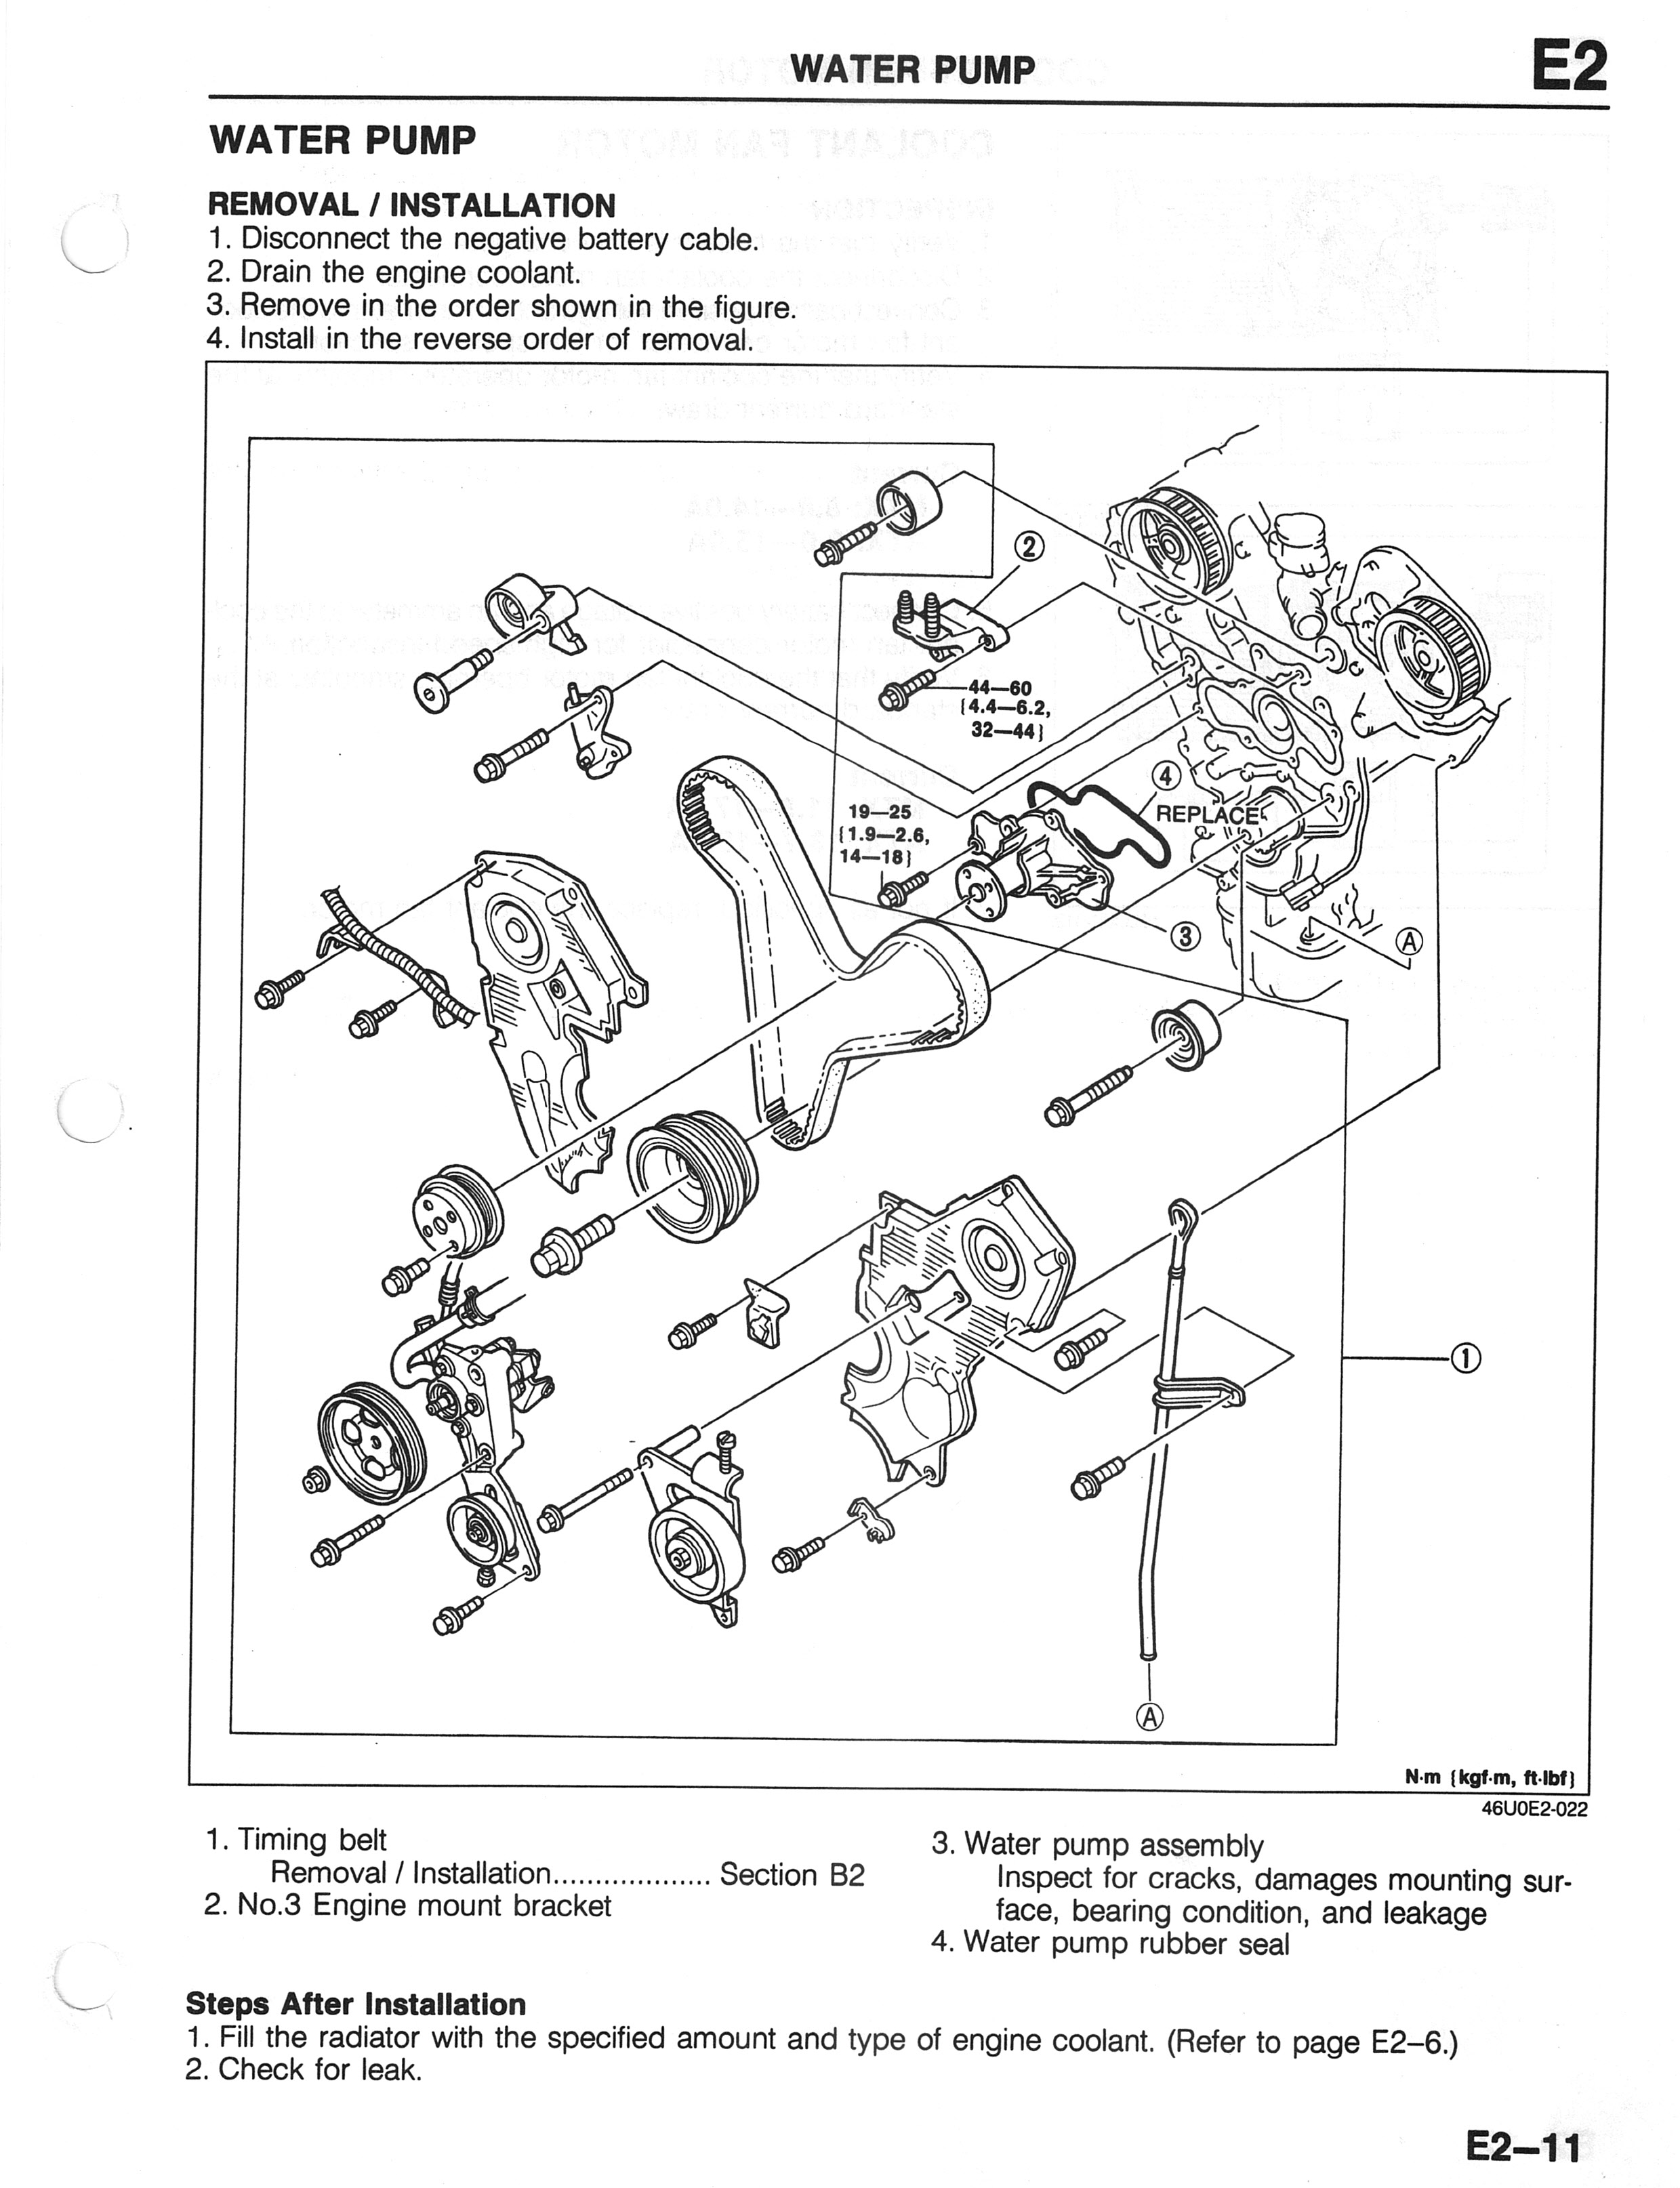 2002 Mazda Tribute Mount Diagram. Mazda. Auto Parts